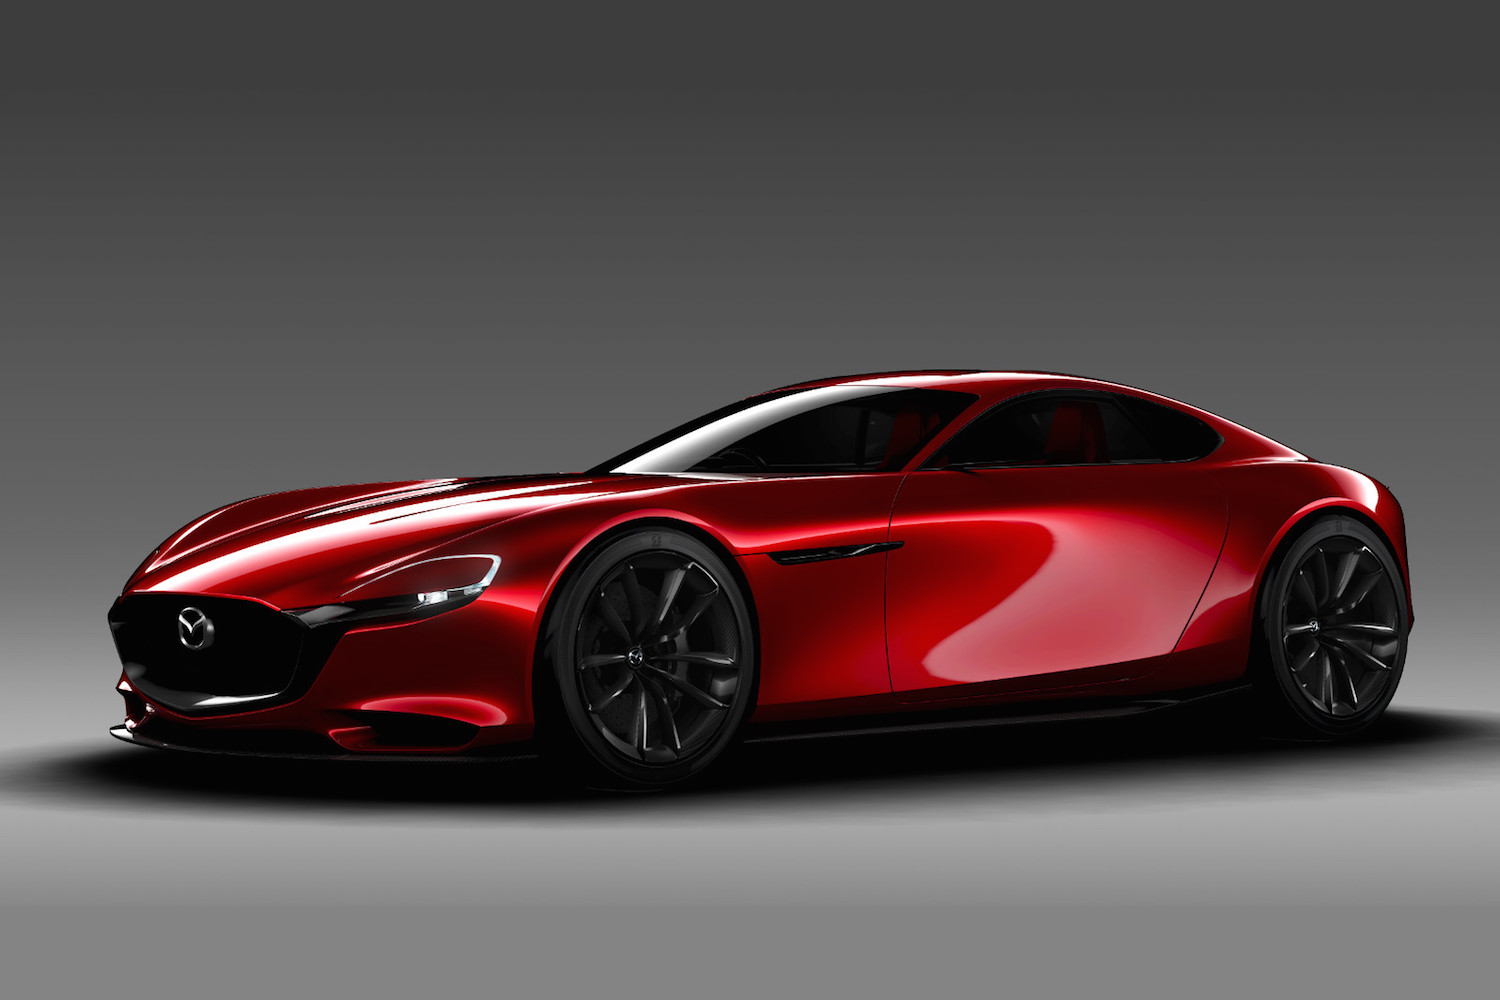 mazda s rx revival sports car will pack turbocharged rotary magnificance. Black Bedroom Furniture Sets. Home Design Ideas